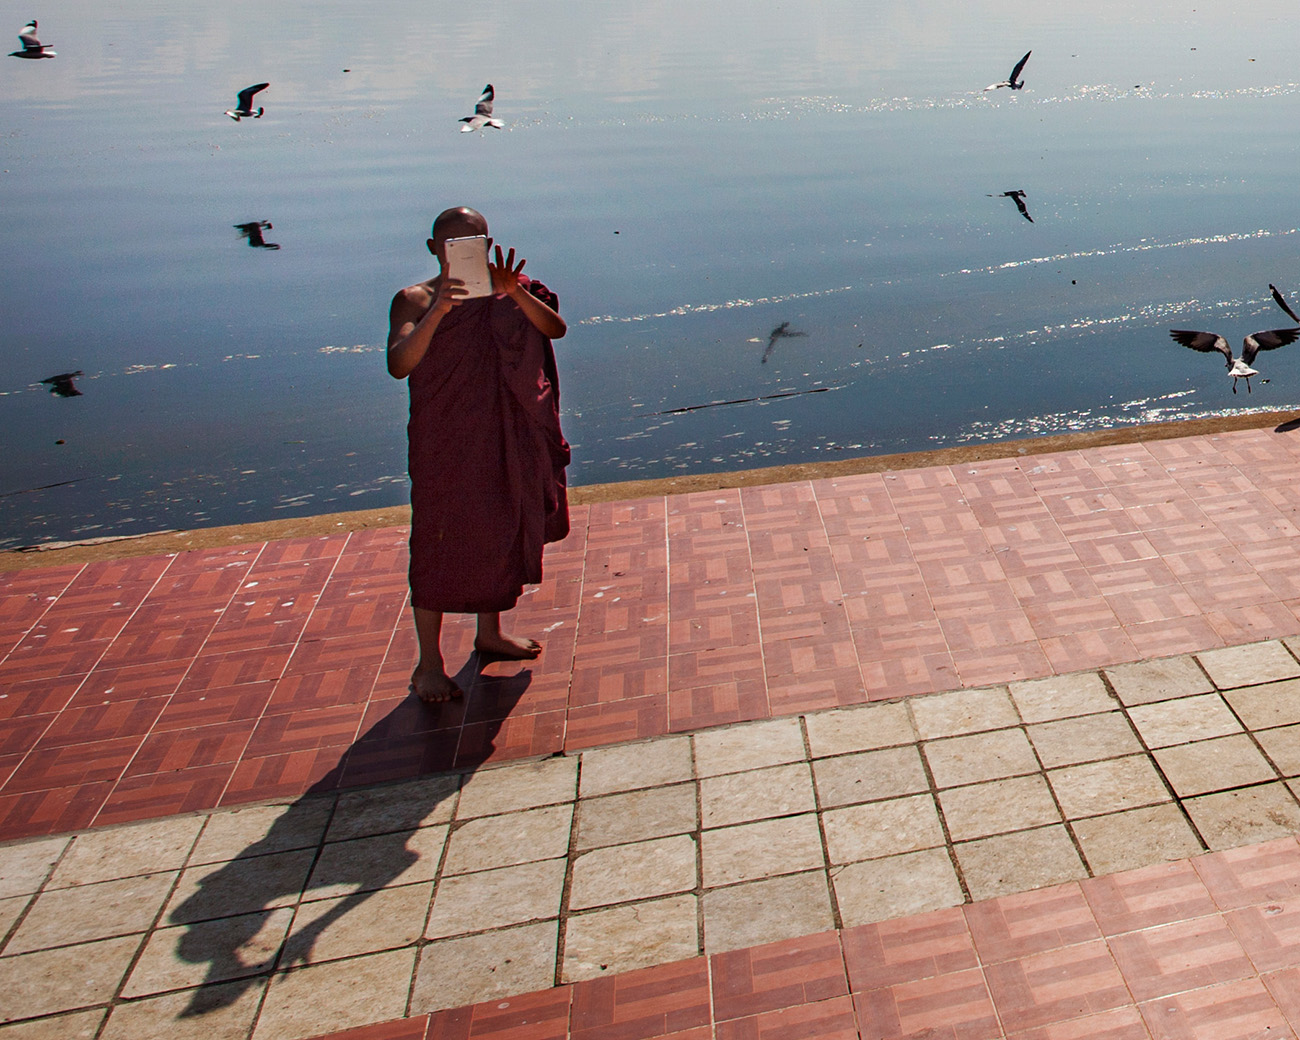 A monk turns the tables and takes a photo of me